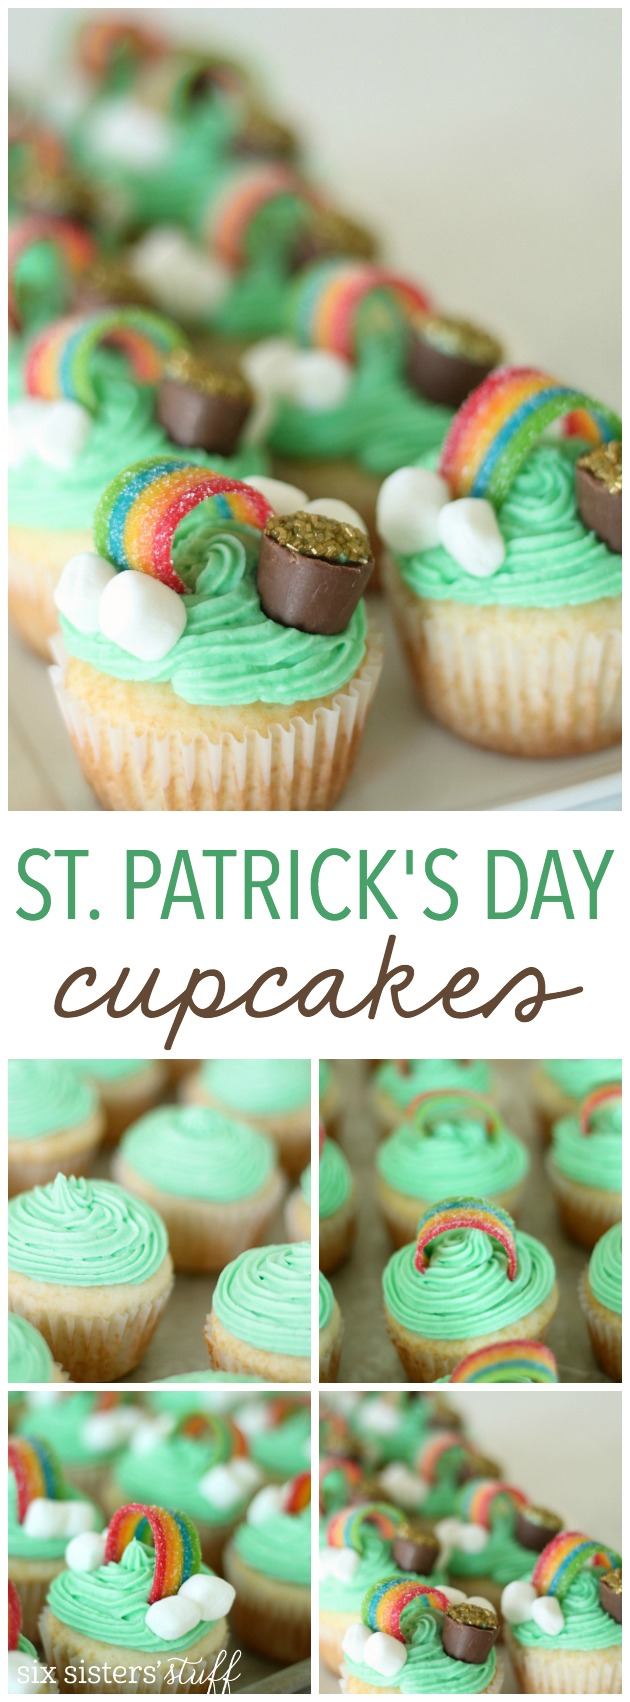 Cute St. Patrick's Day Cupcakes from SixSistersStuff.com